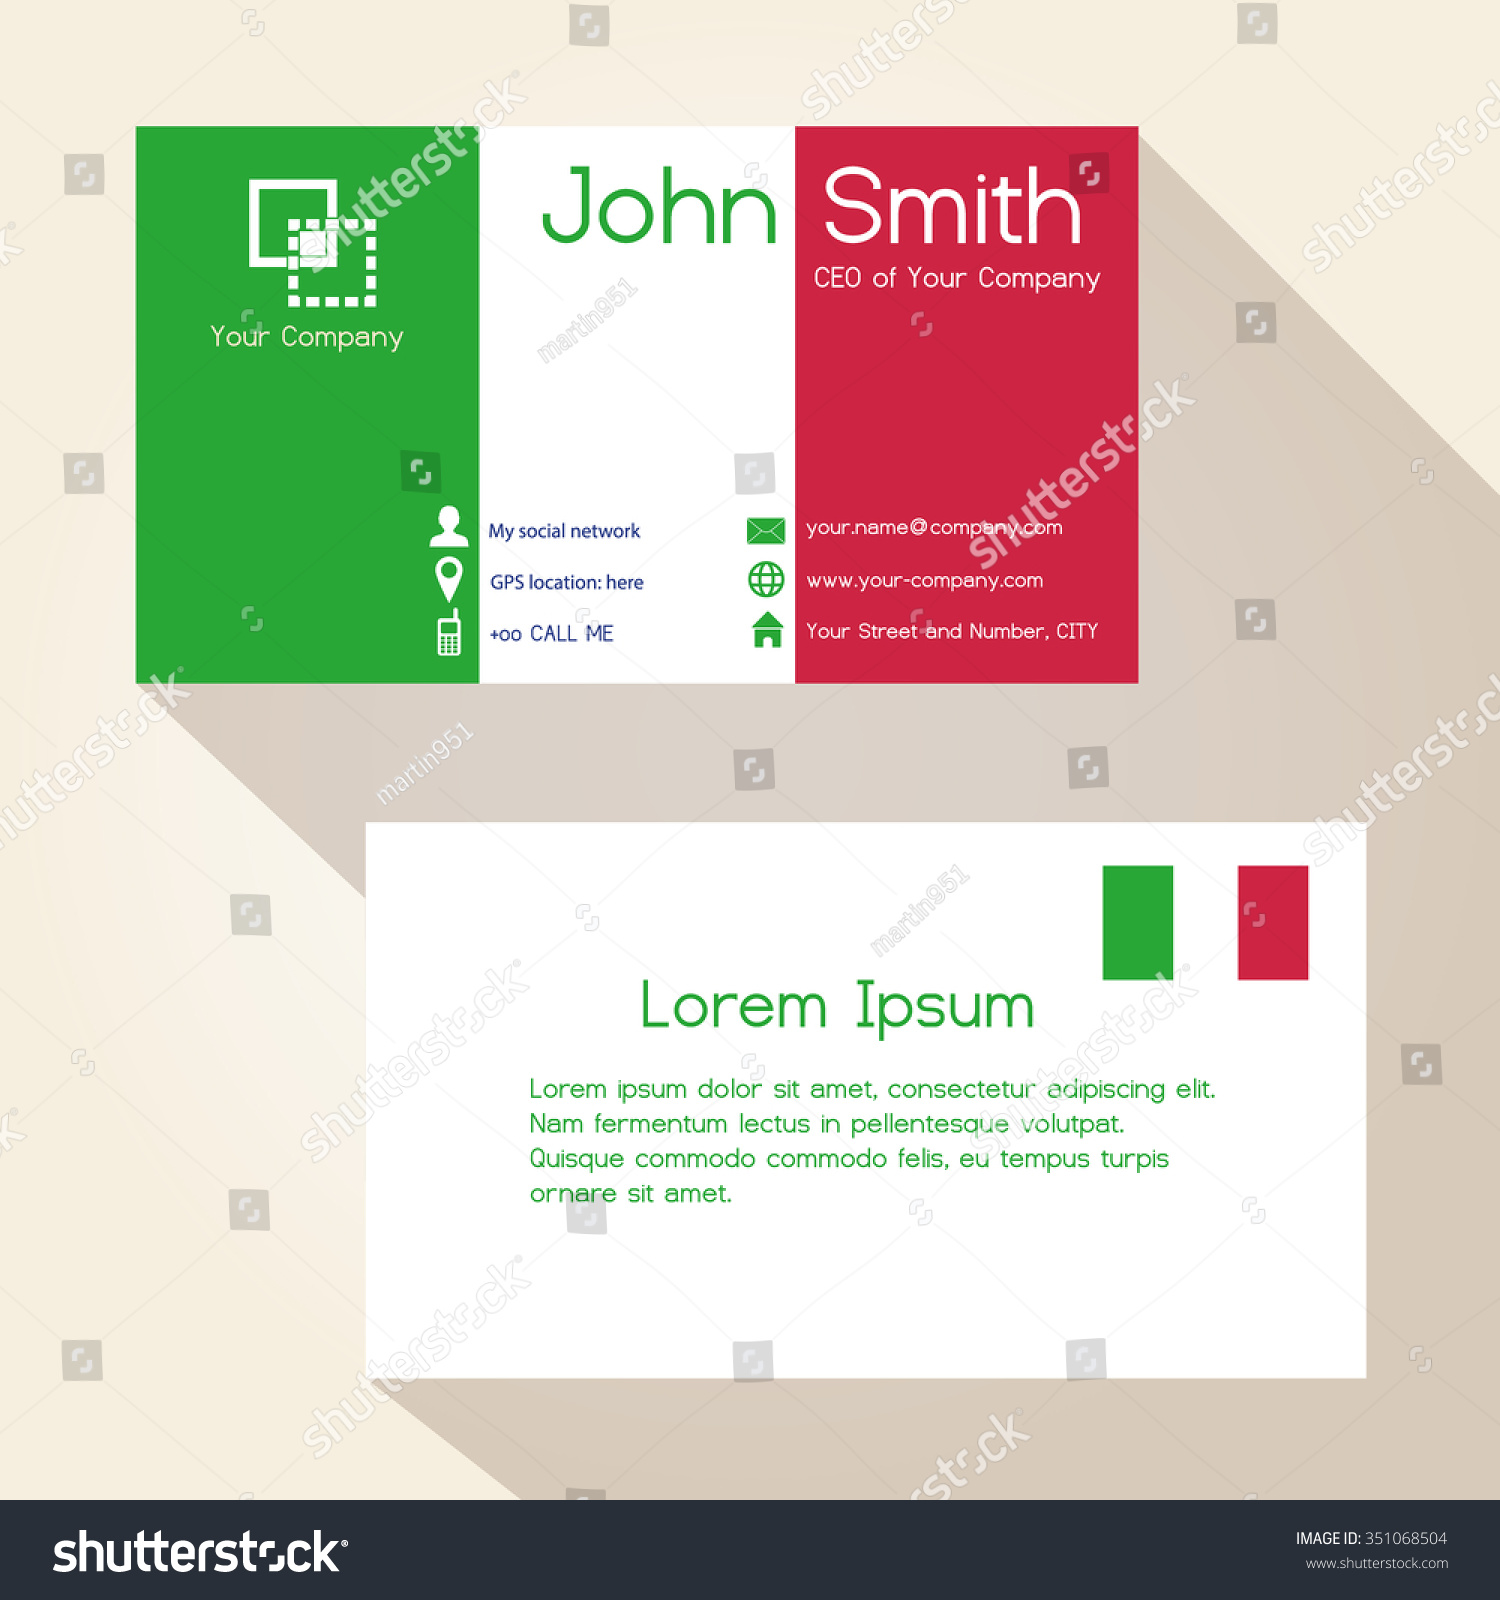 simple colors business card design stock vector 351068504 simple colors business card design eps10